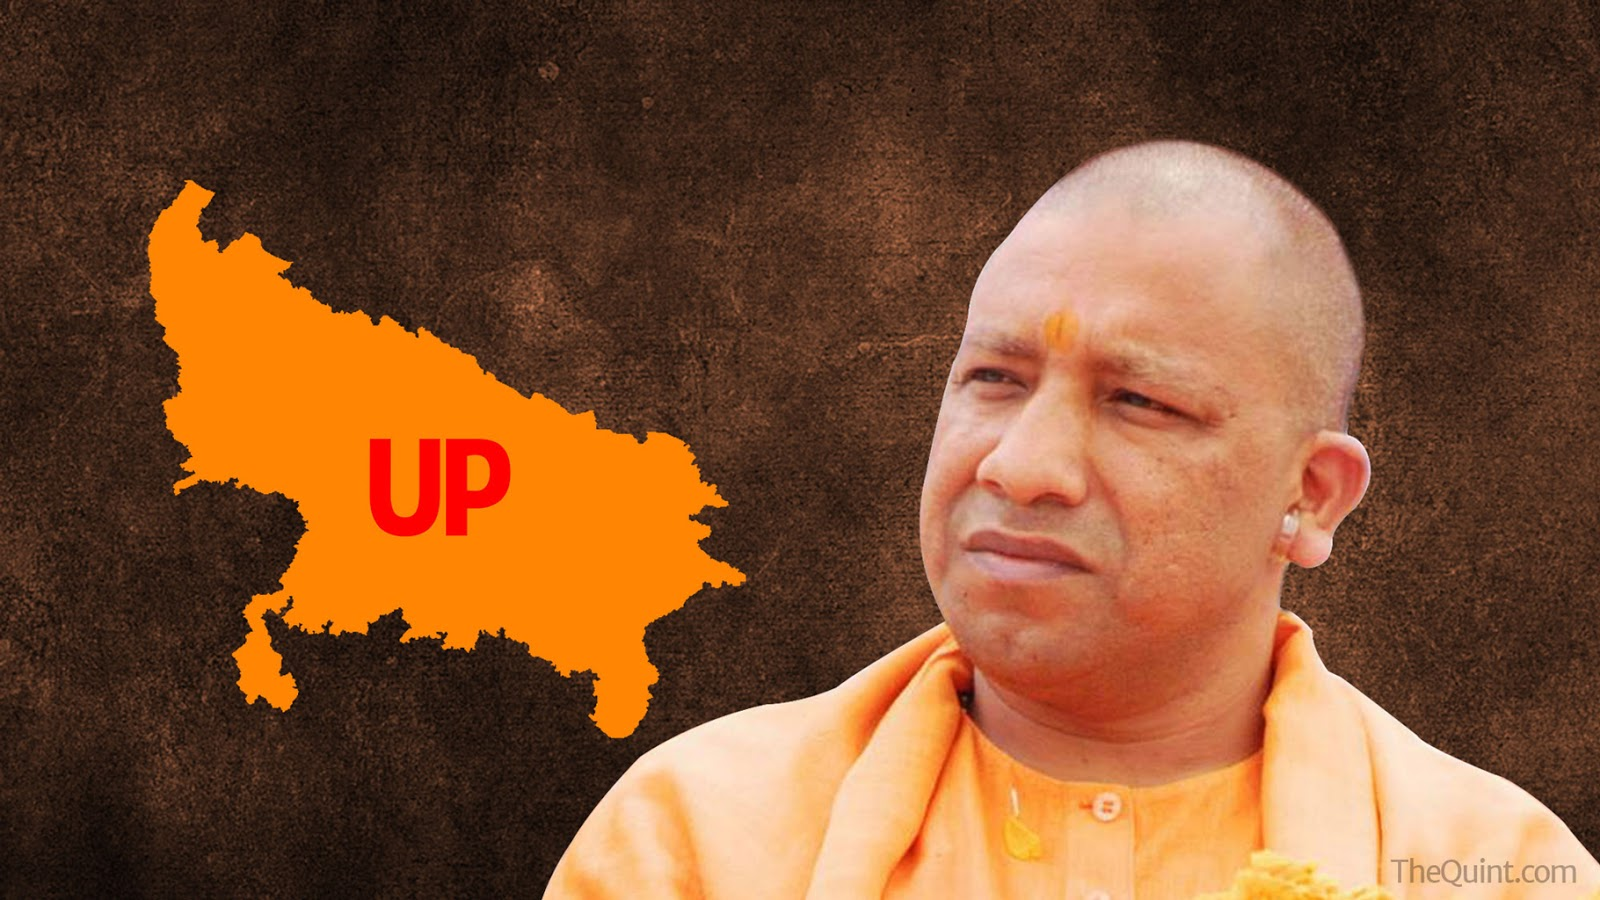 How Yogi Adityanath Has Gone From Being Head Priest In Gorakhpur To Becoming UP's CM